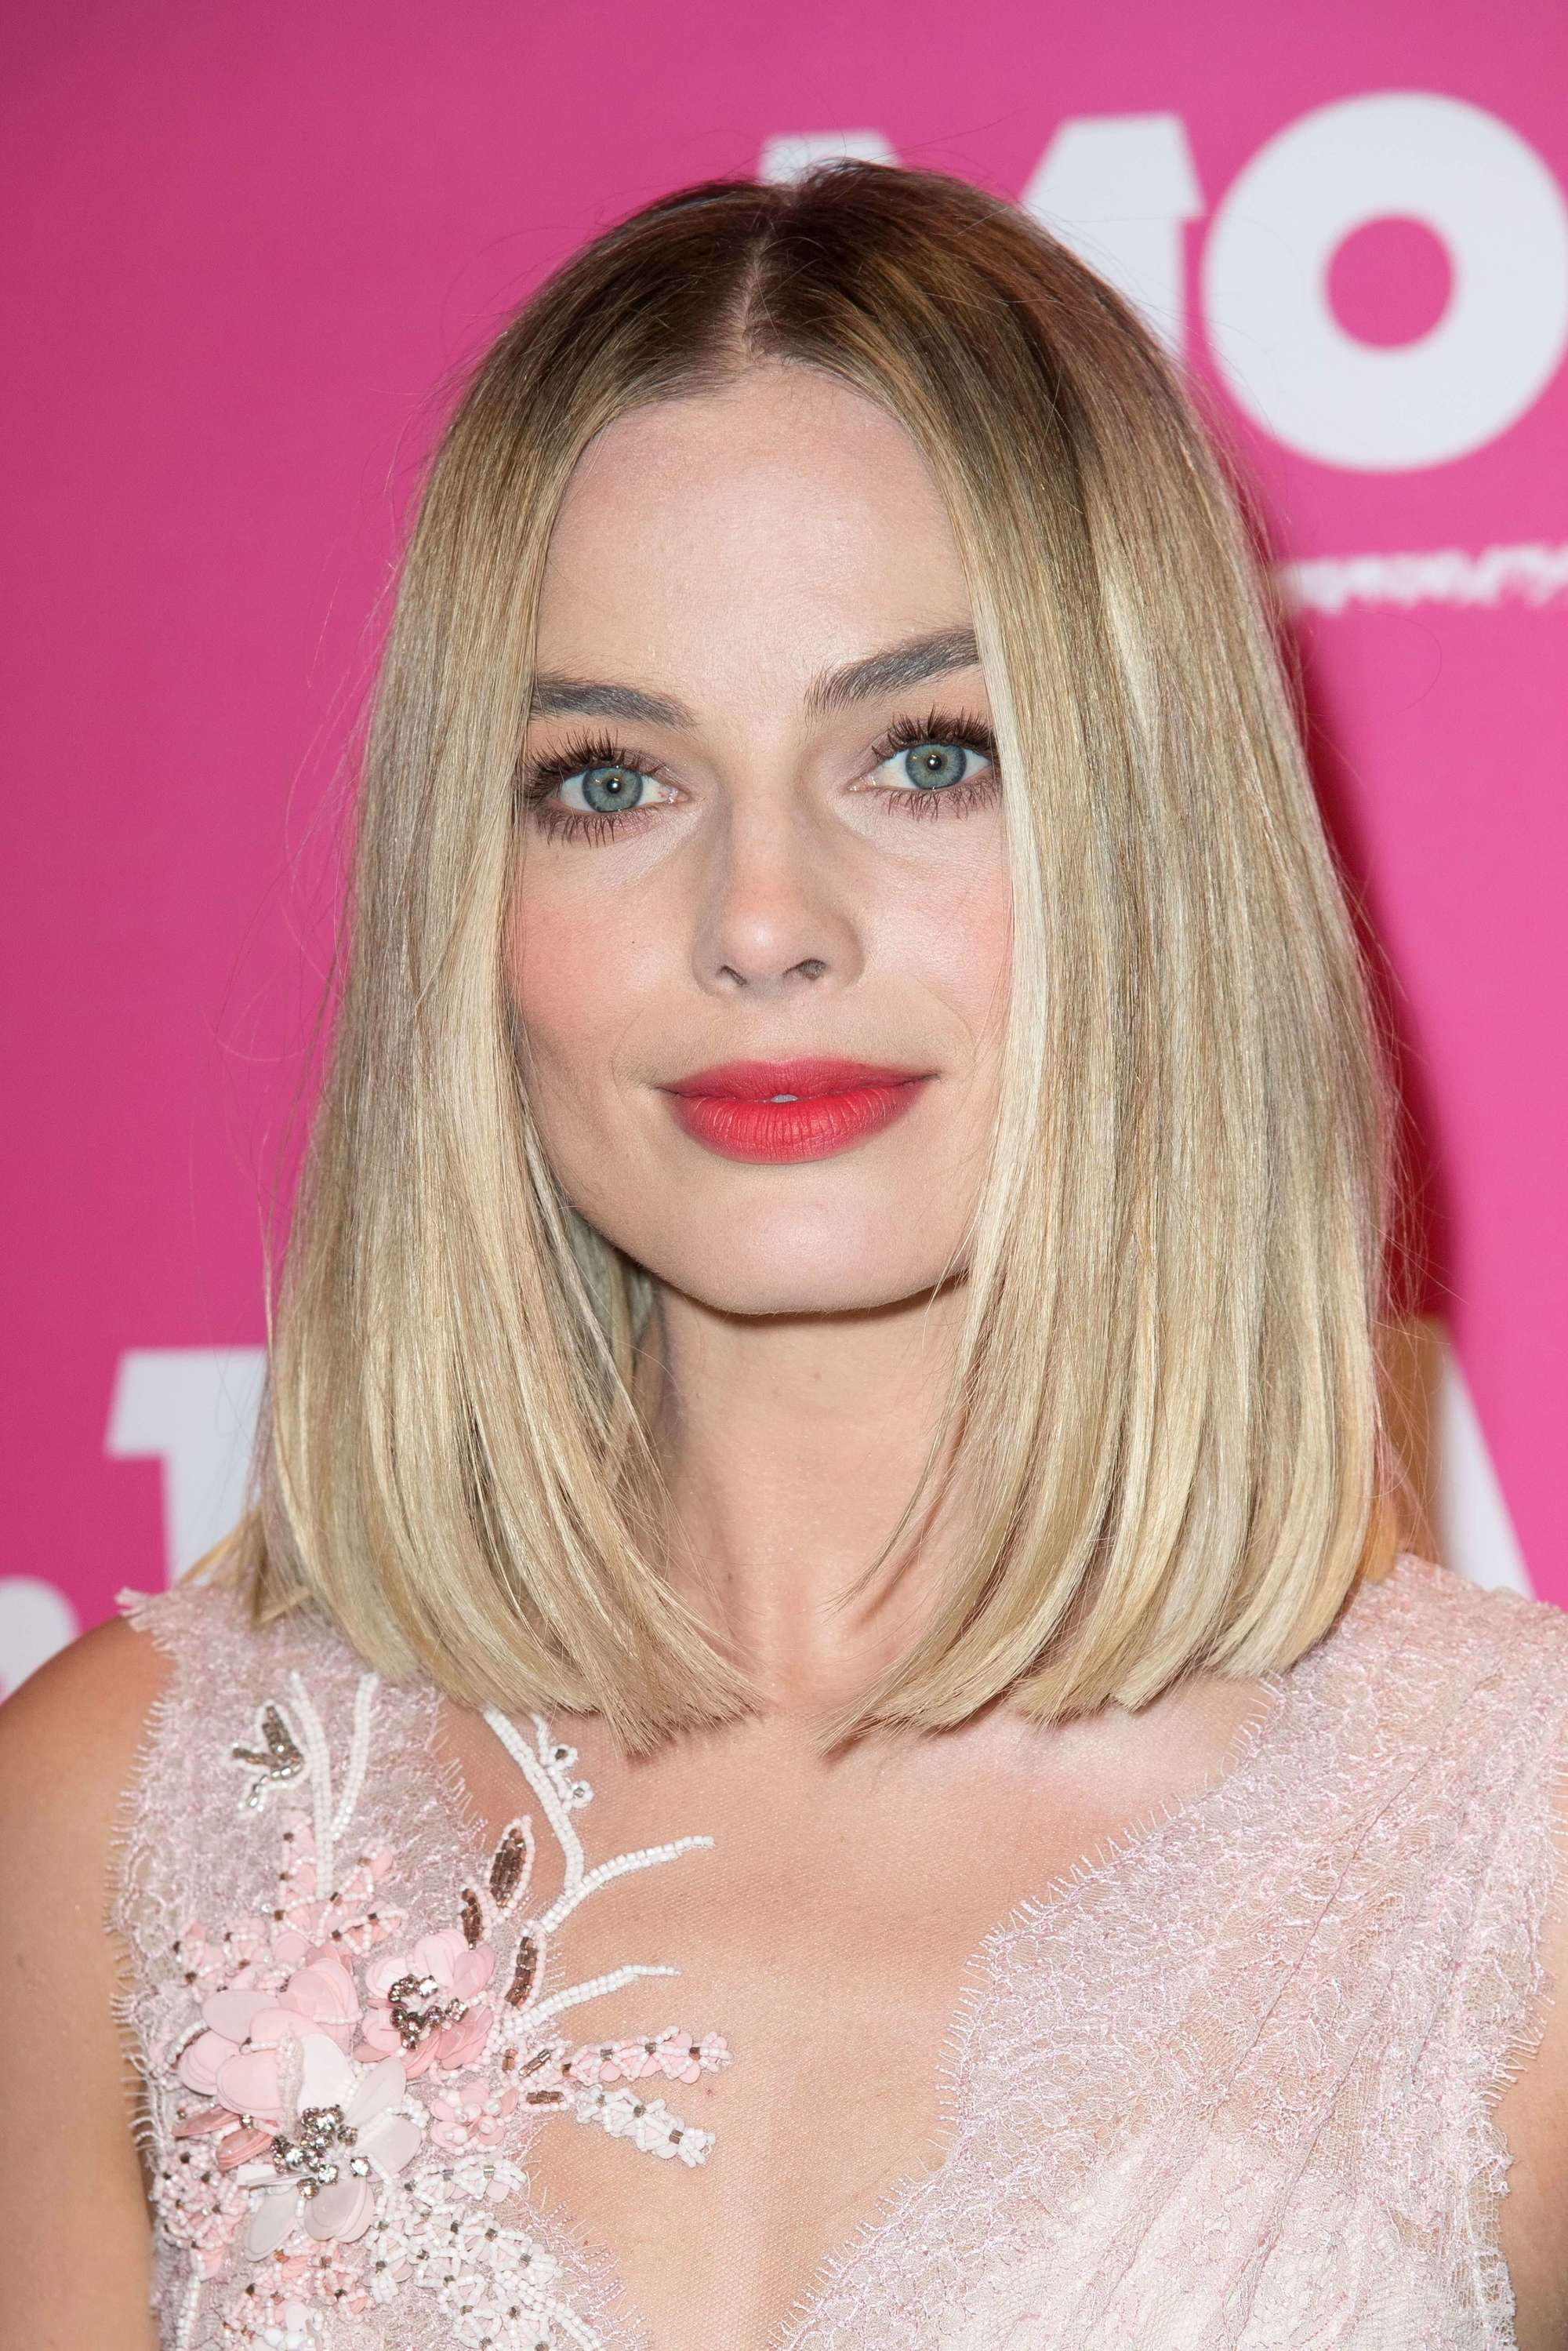 Medium hairstyles for thick hair: Margot Robbie with blonde hair in a straight rounded lob